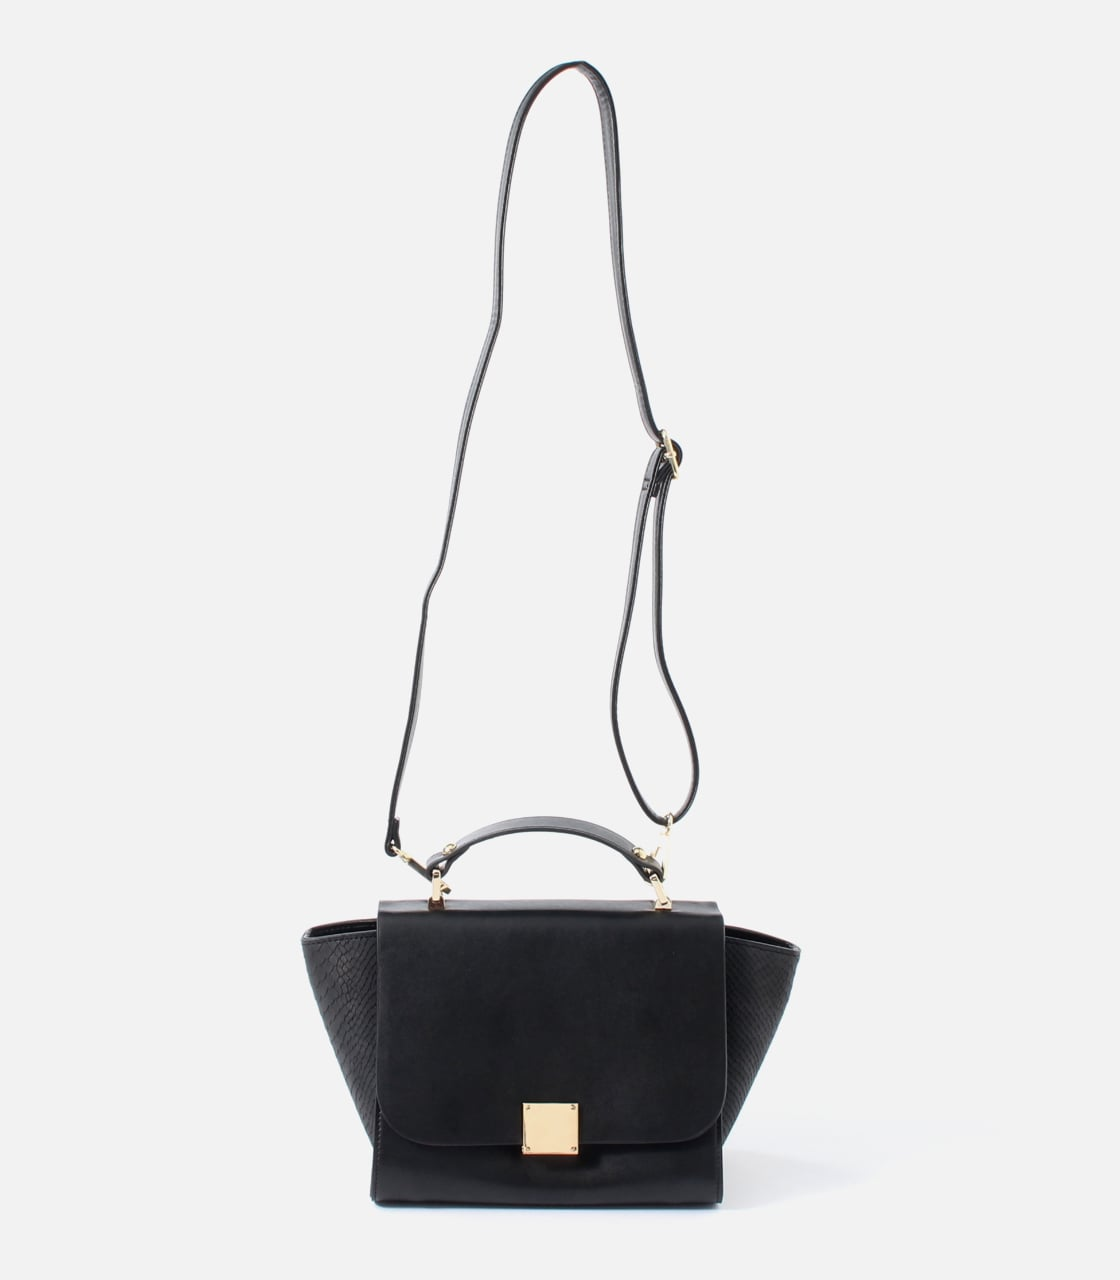 【AZUL BY MOUSSY】SQUARE METAL BAG 詳細画像 BLK 8